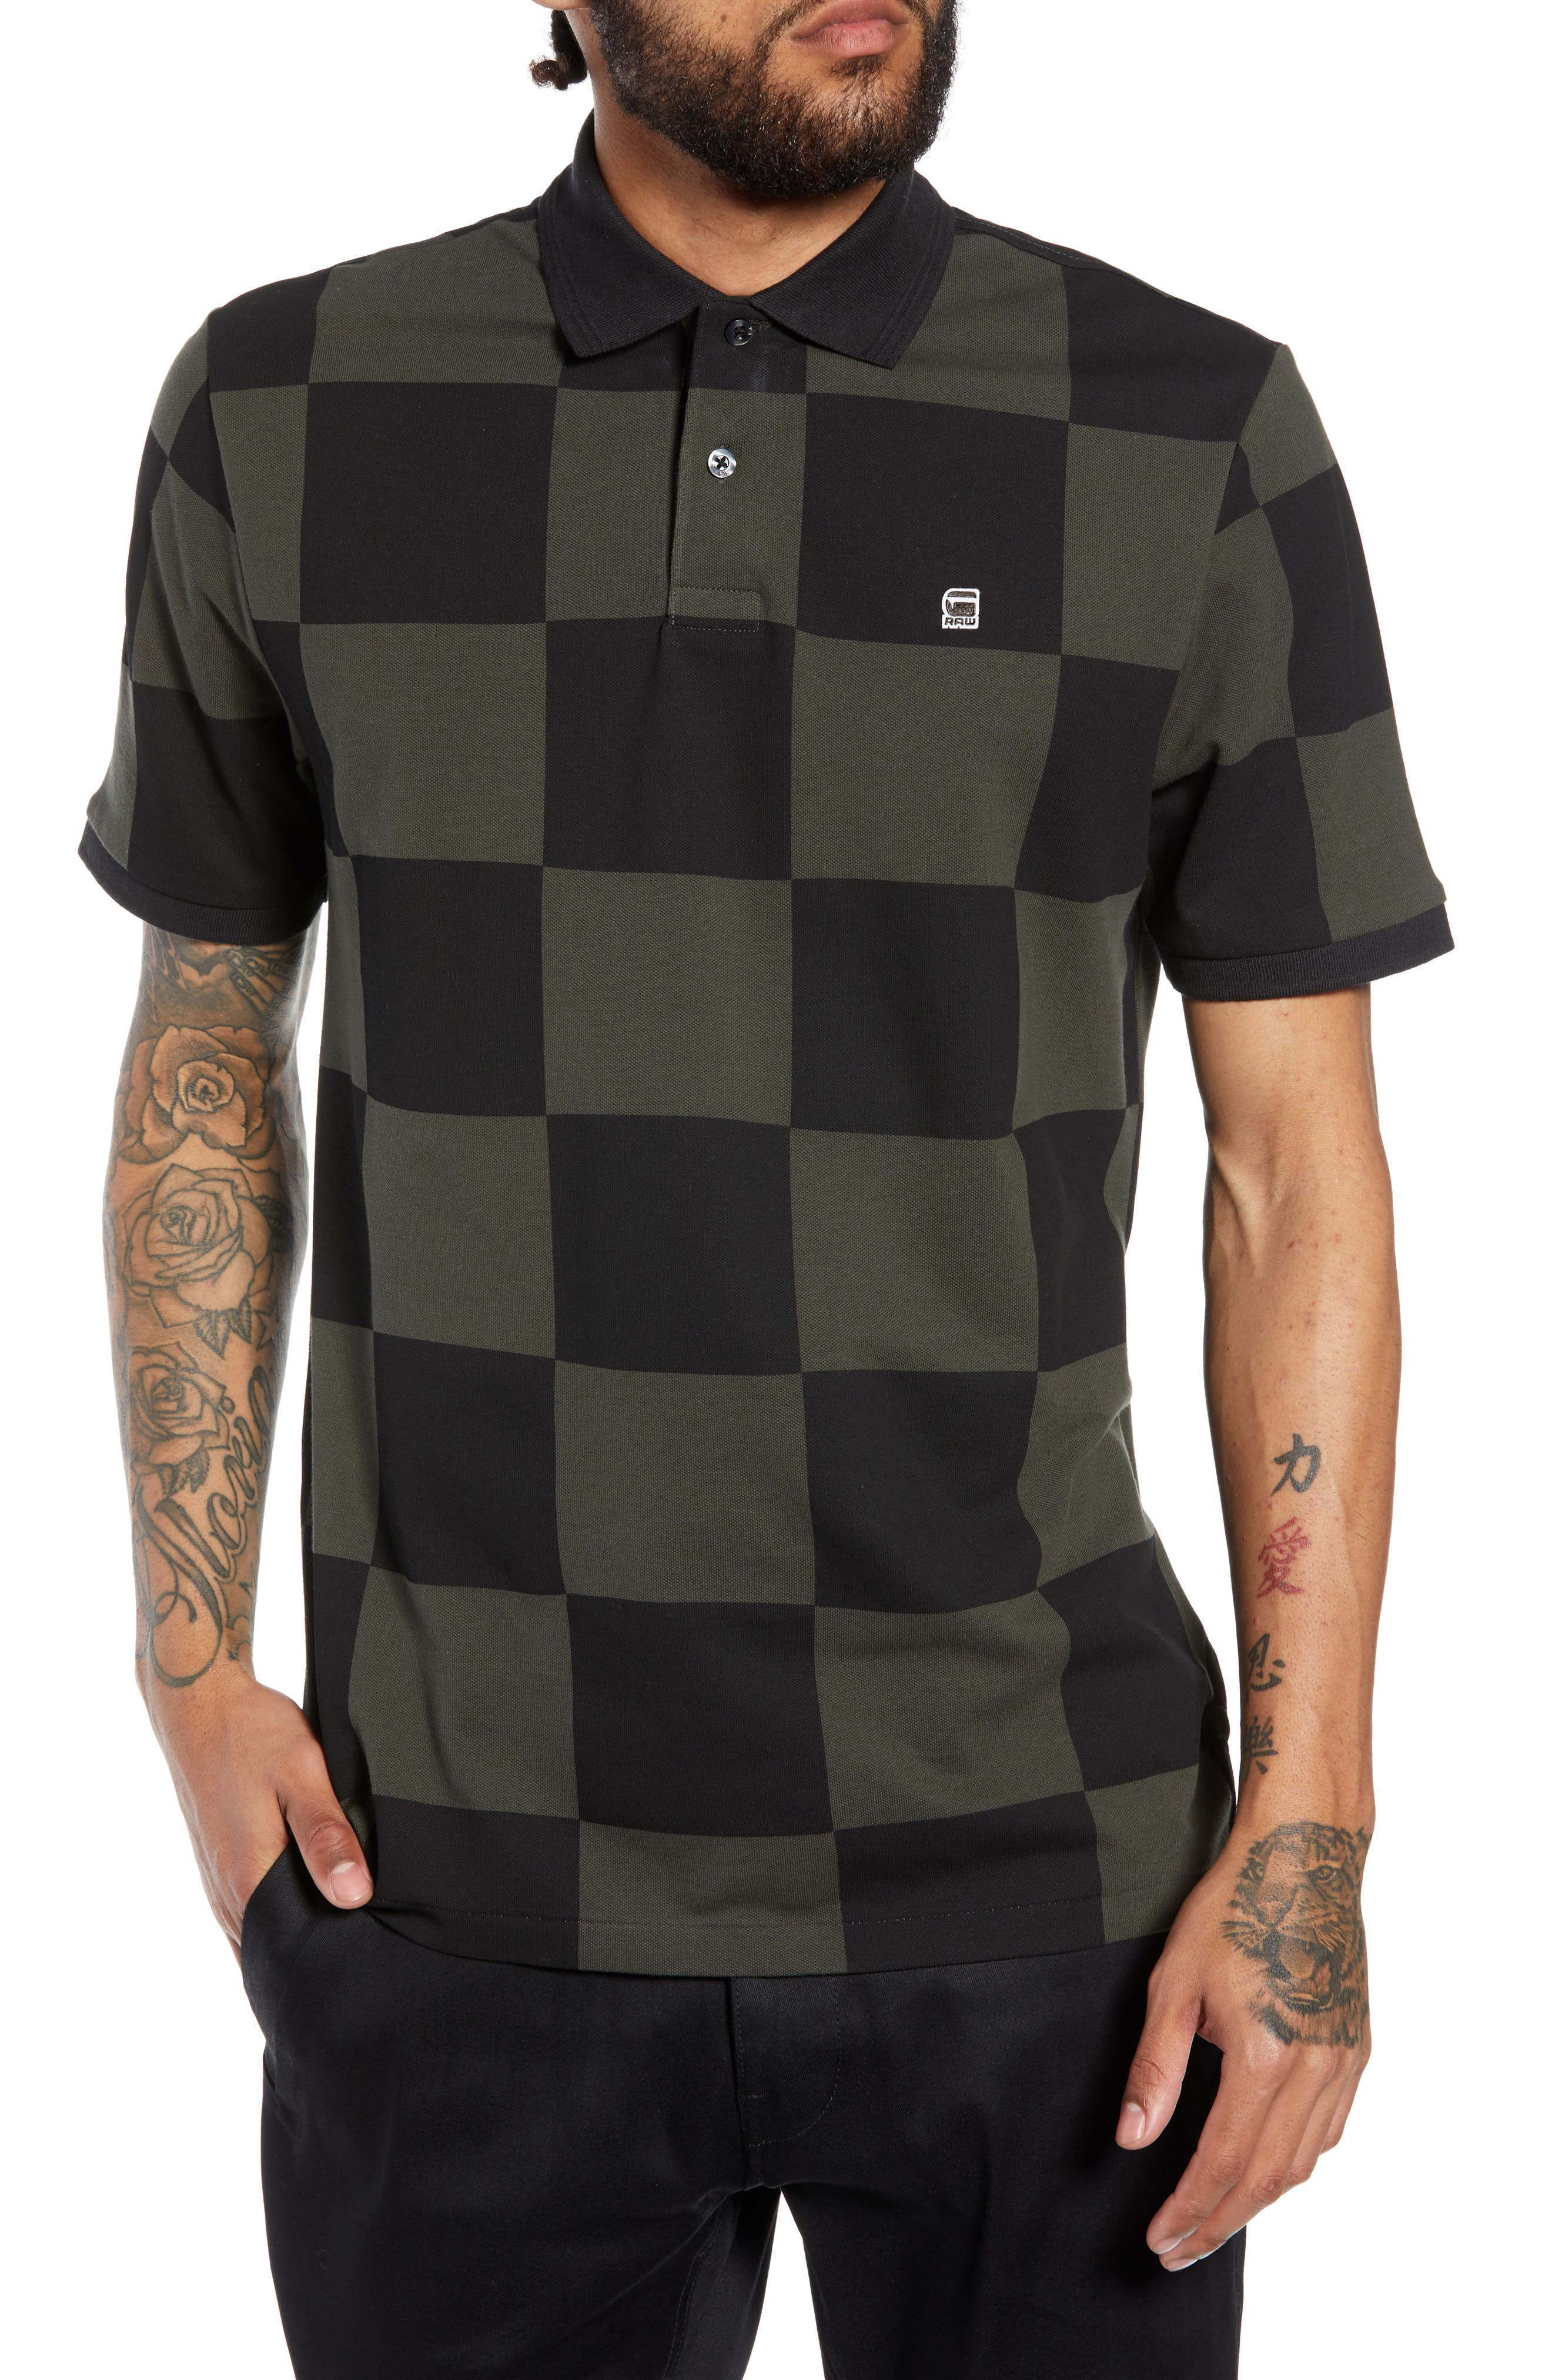 G-STAR RAW,                             Holliday Core Checker Piqué Polo,                             Main thumbnail 1, color,                             020